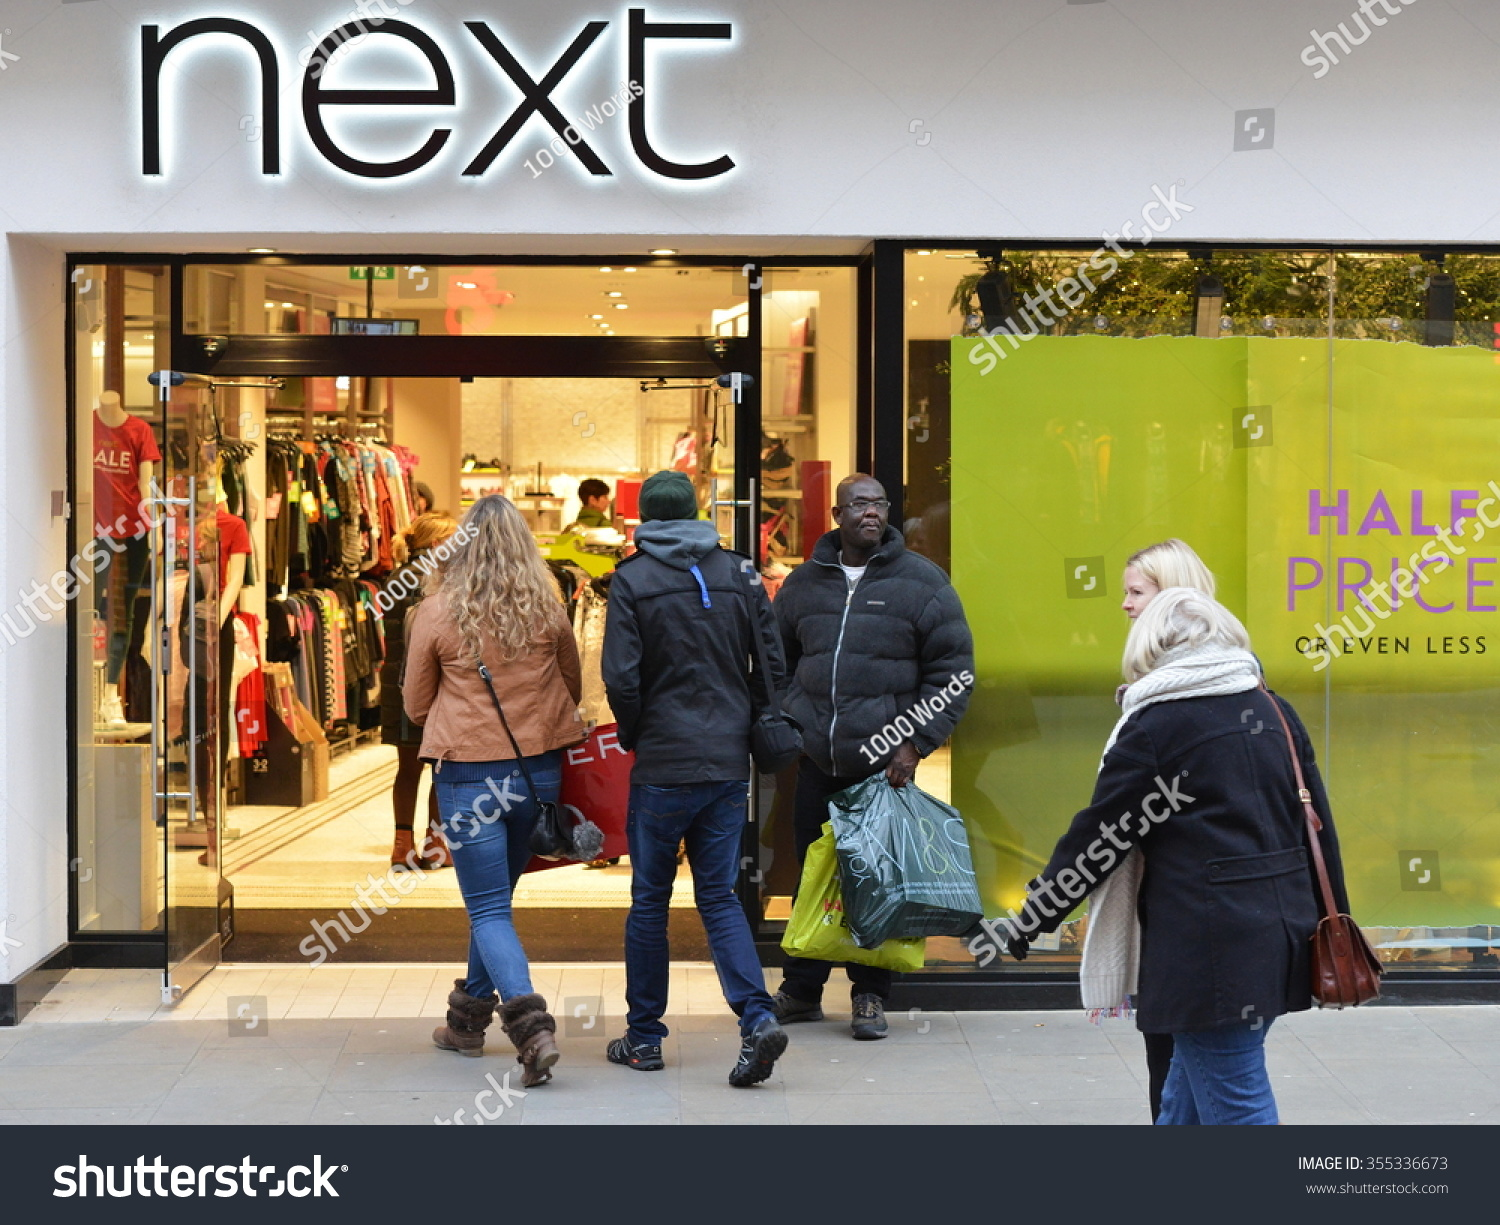 BATH UK DEC 26 2014 People visit stores in Southgate shopping district for the Boxing Day Sales Many stores across the country traditionally hold sales on Boxing Day with have discounted goods